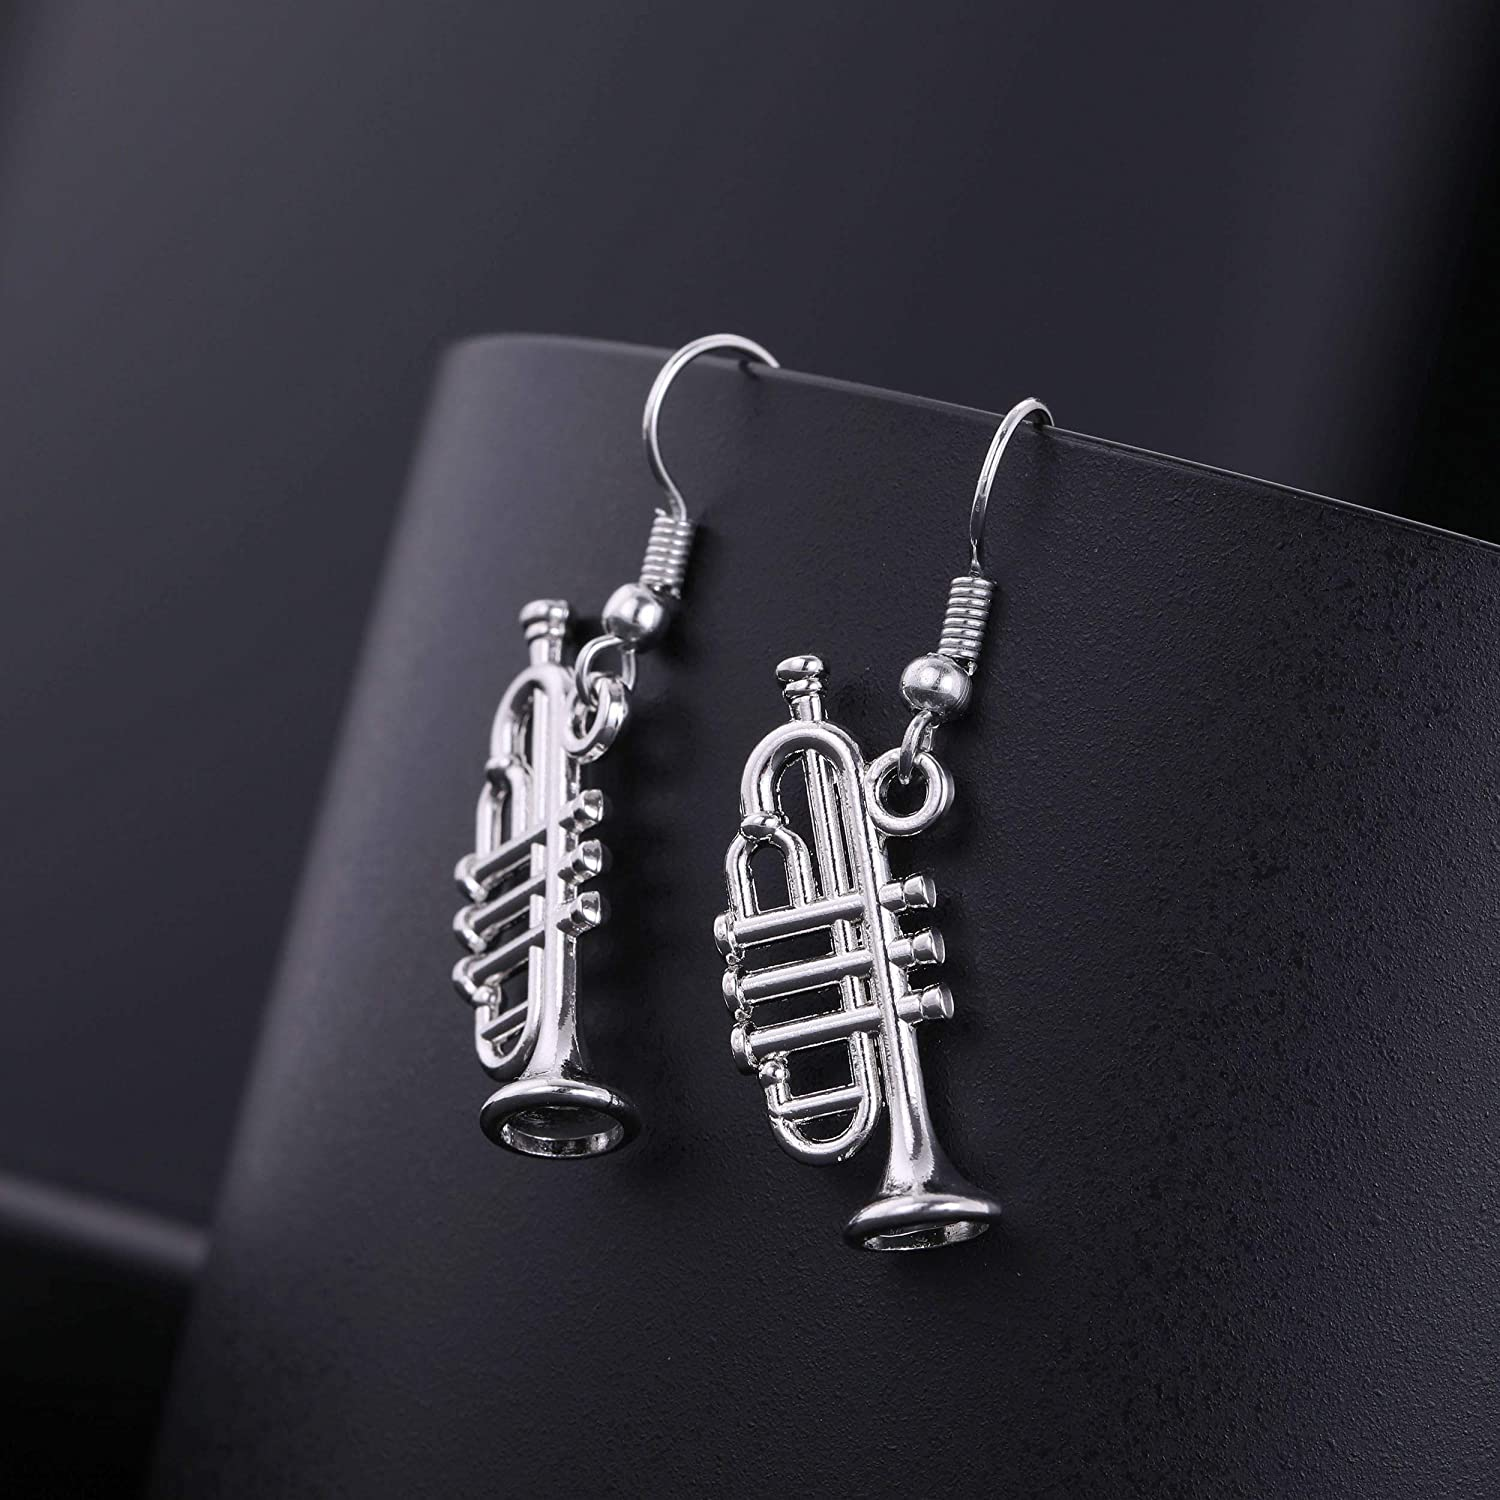 TEAMER Trumpet Music Charm Dangle Earrings Musical Instrument for Music Lovers Jewelry